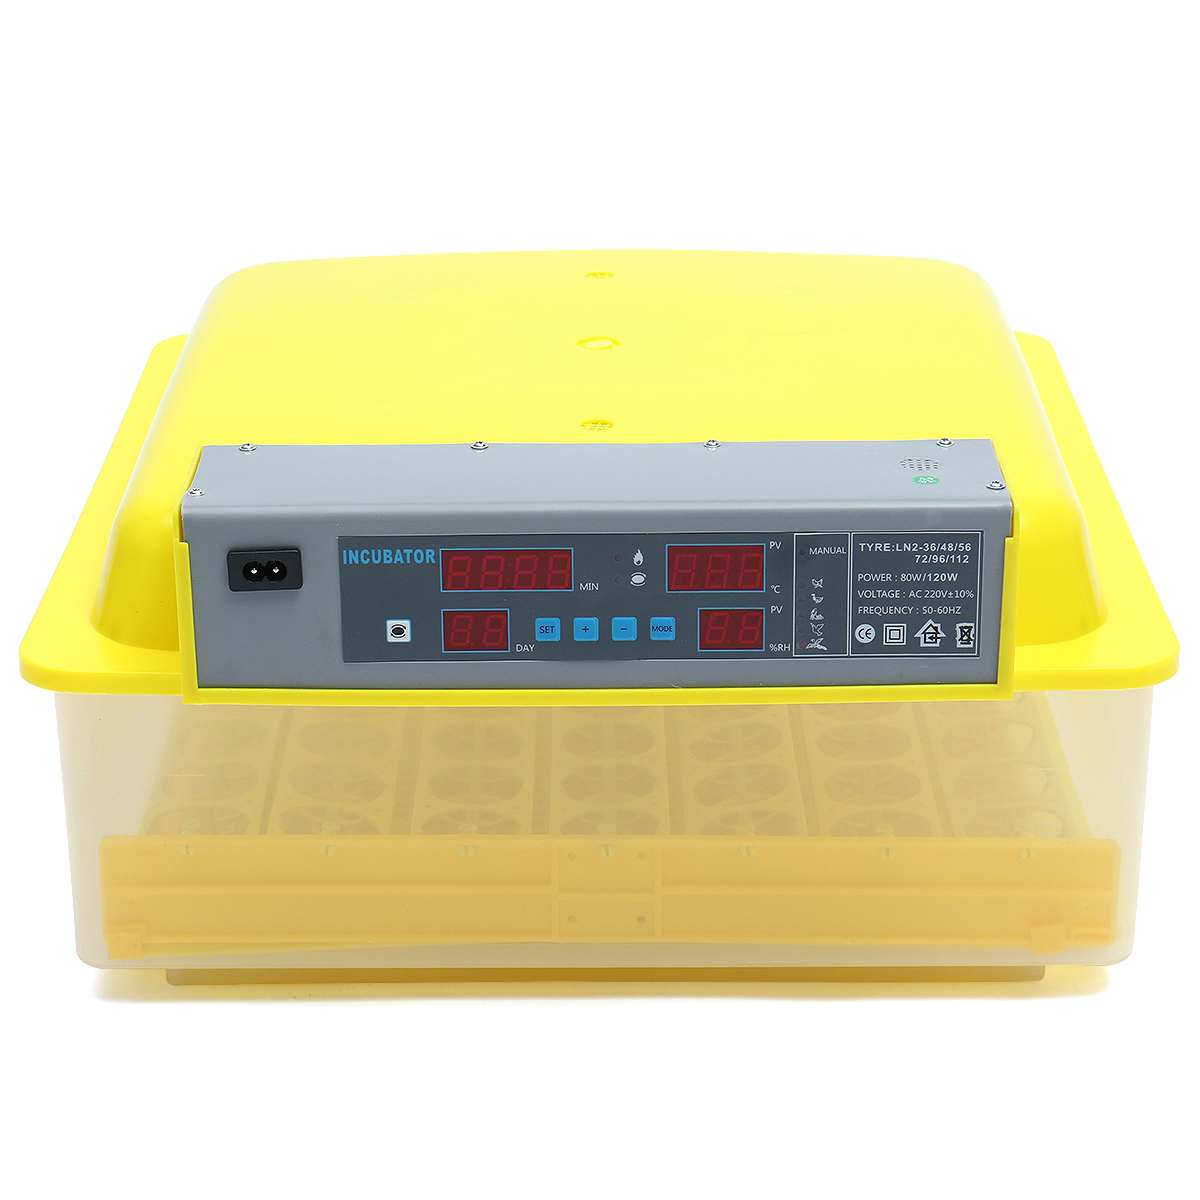 56 Egg Brooder Digital Fully Automatic Incubator Hatcher Turning Chicken Duck Humidity Temperature Control New Hatching machine